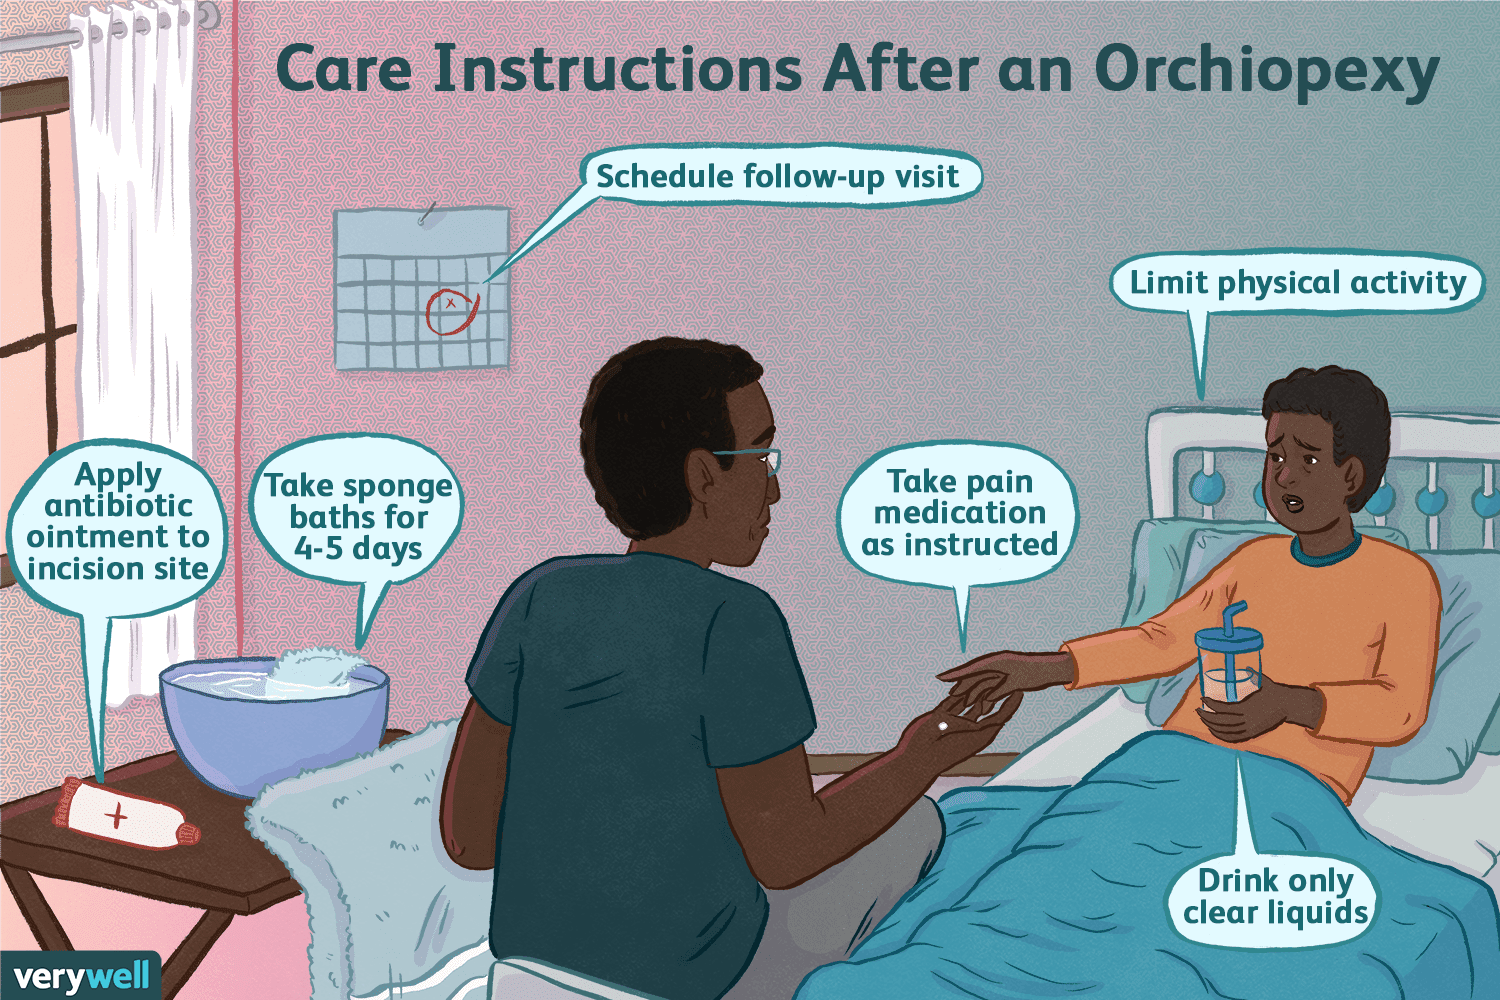 Care instructions after orchiopexy